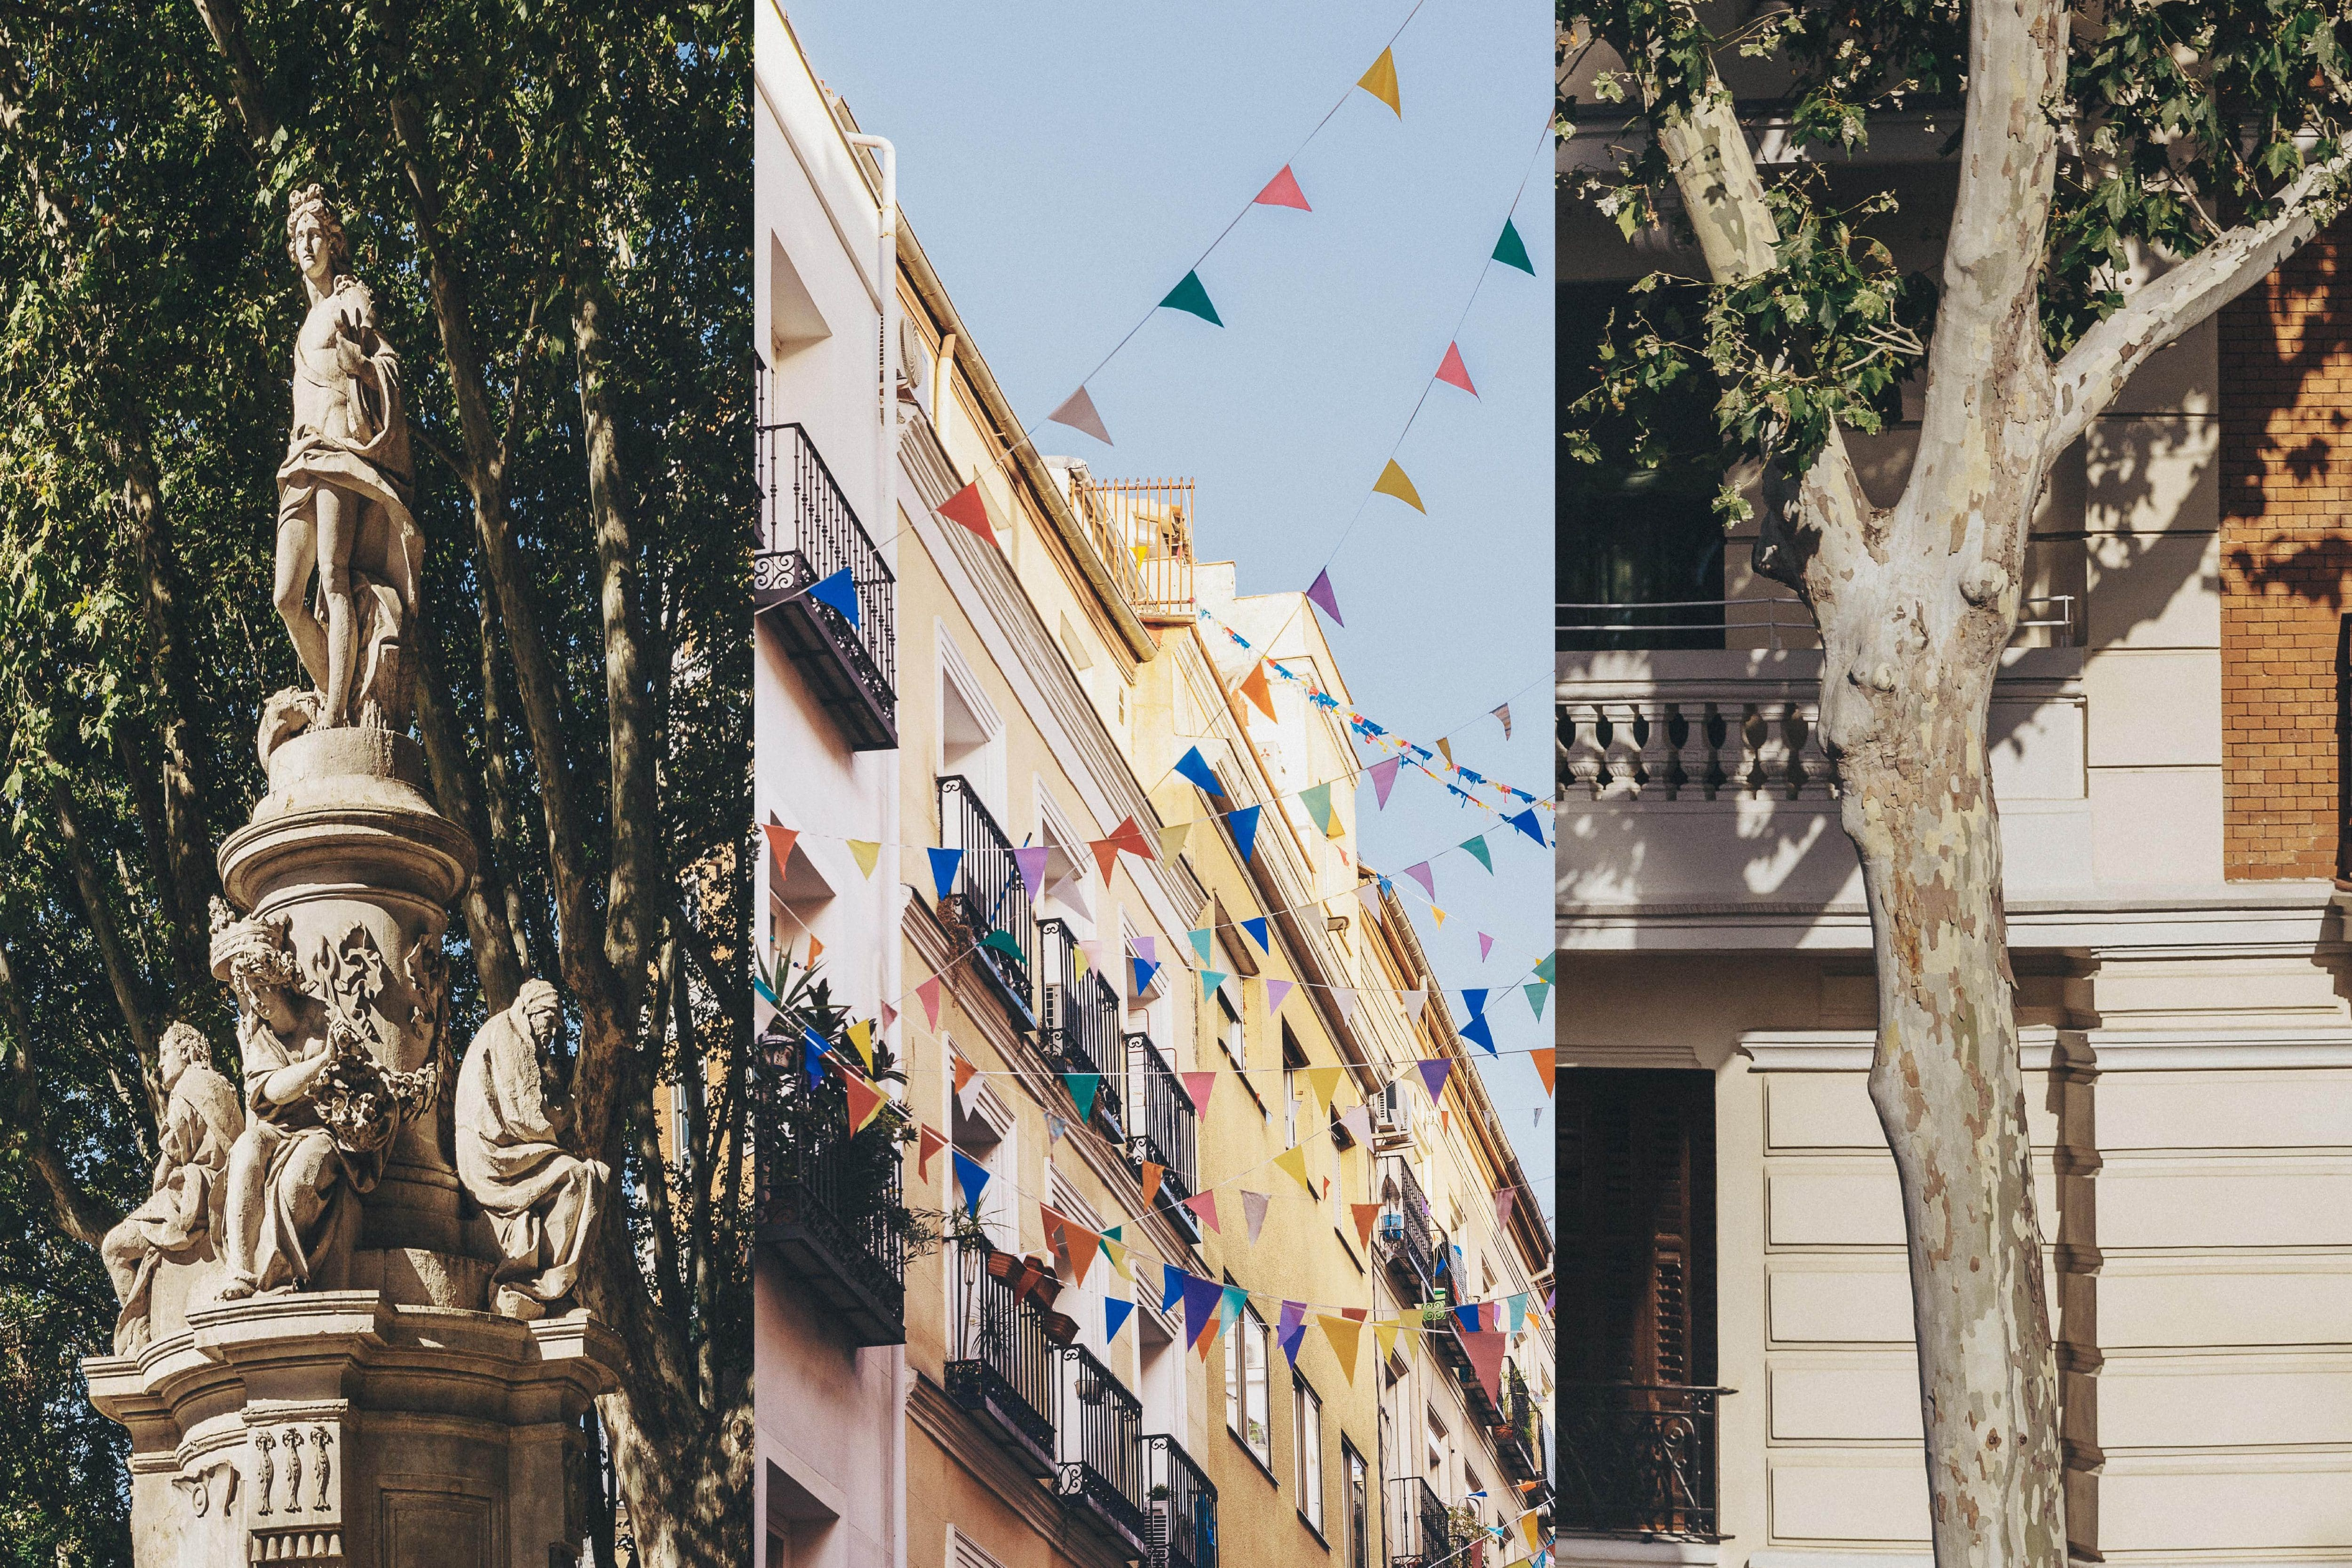 Collage of images of streets of Madrid, including a classical monument and colourful banners hanging between windows